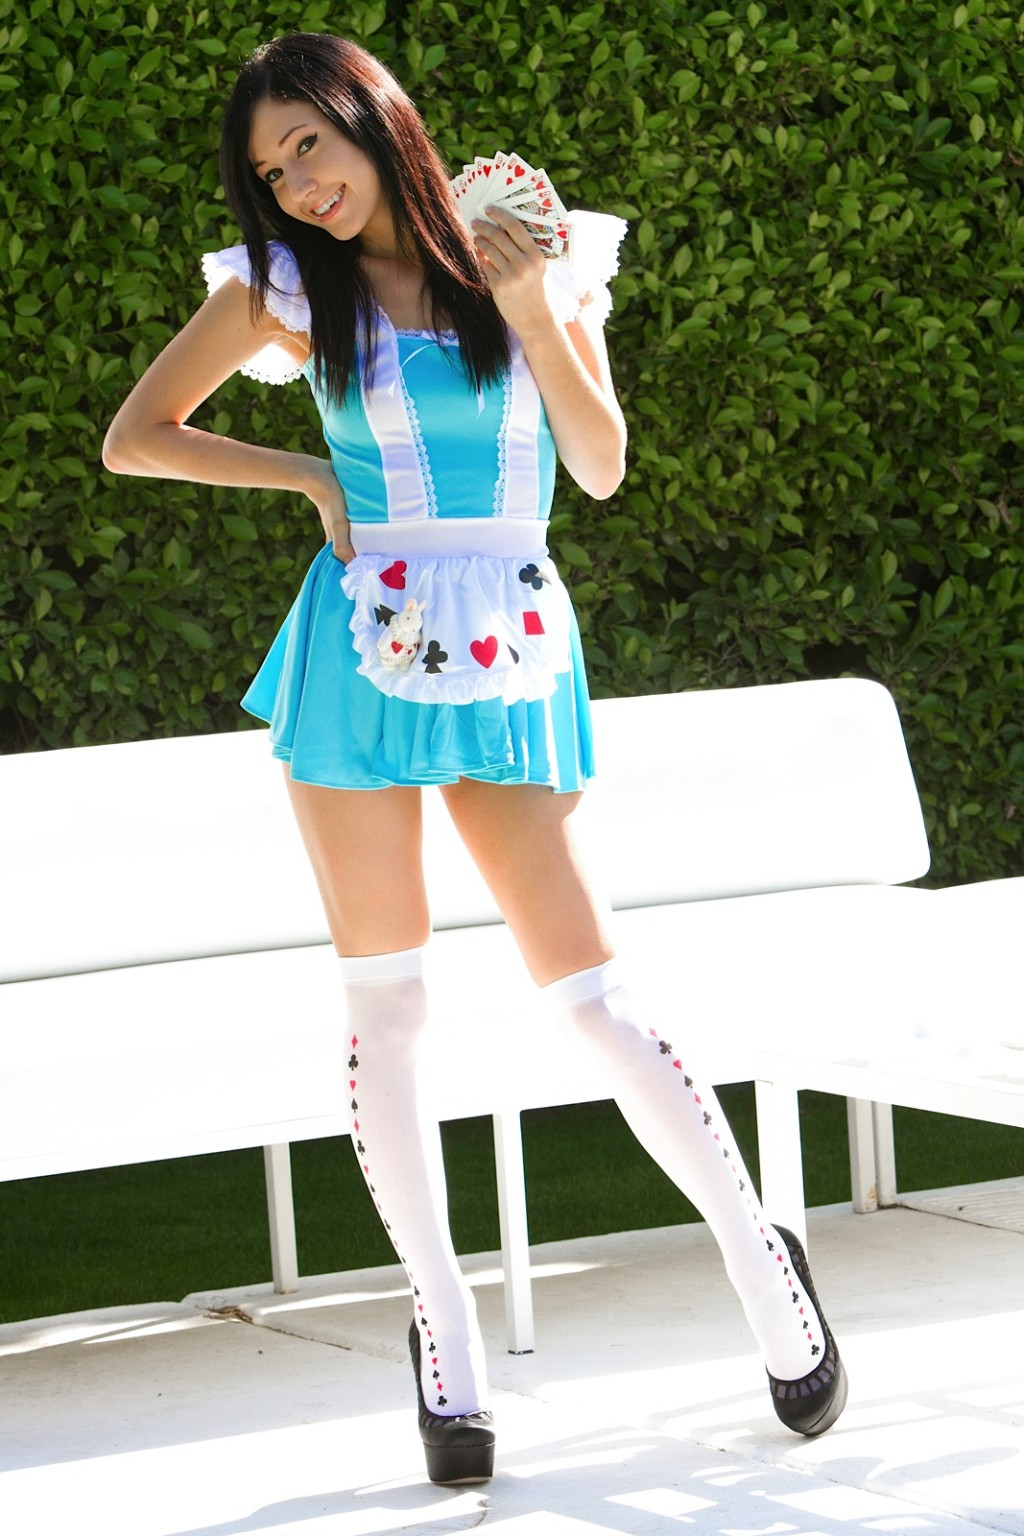 Catie minx in cosplay as a nasty adult baby alice in wonderland